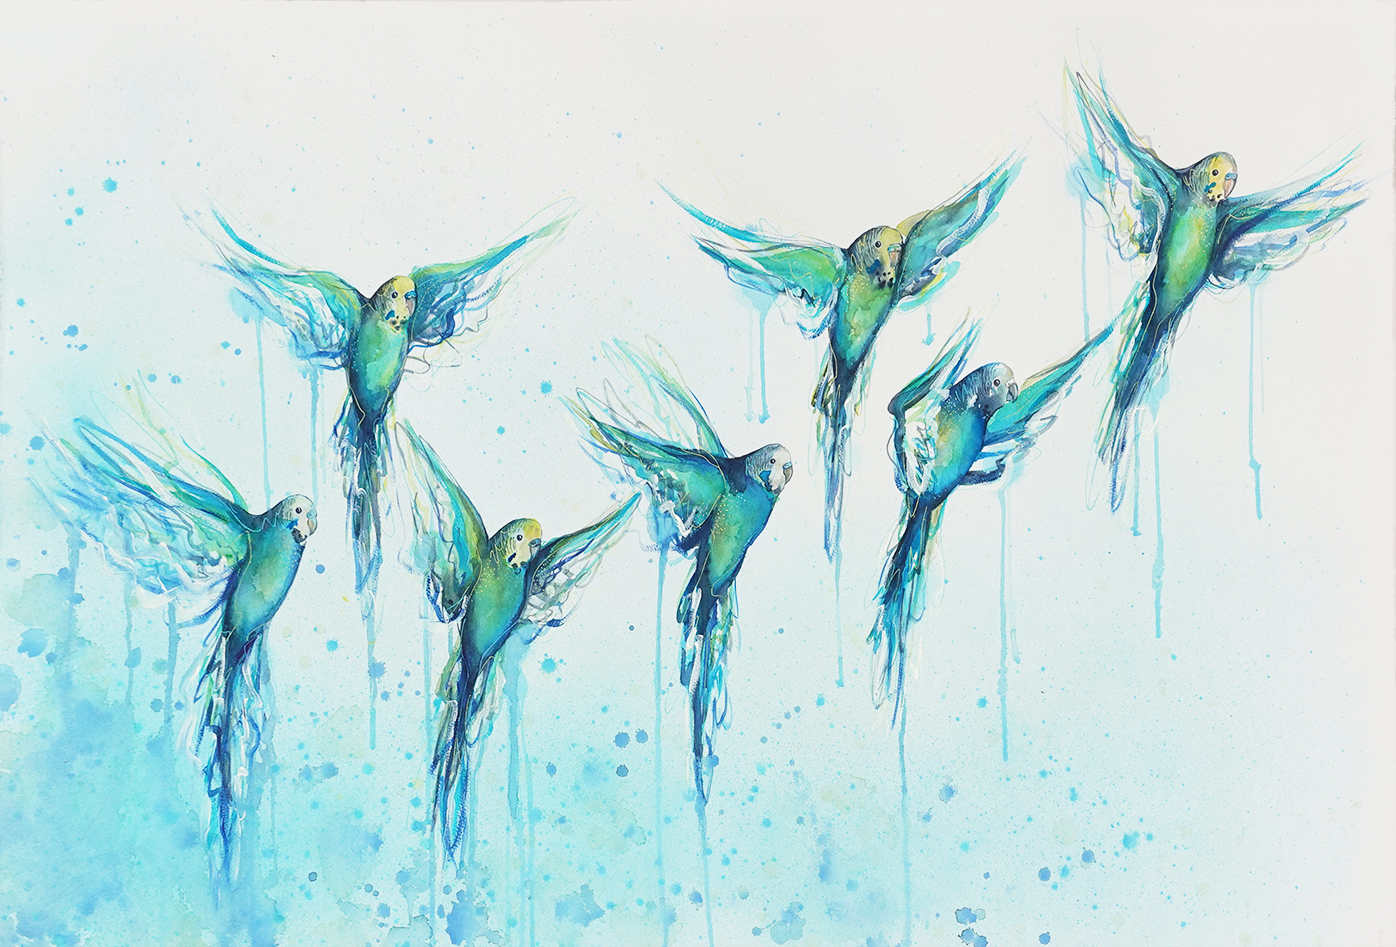 2c. Artist Leni Kae A Flying Flock To Give In 2020 (budgies) 2 100x68cm 1800px